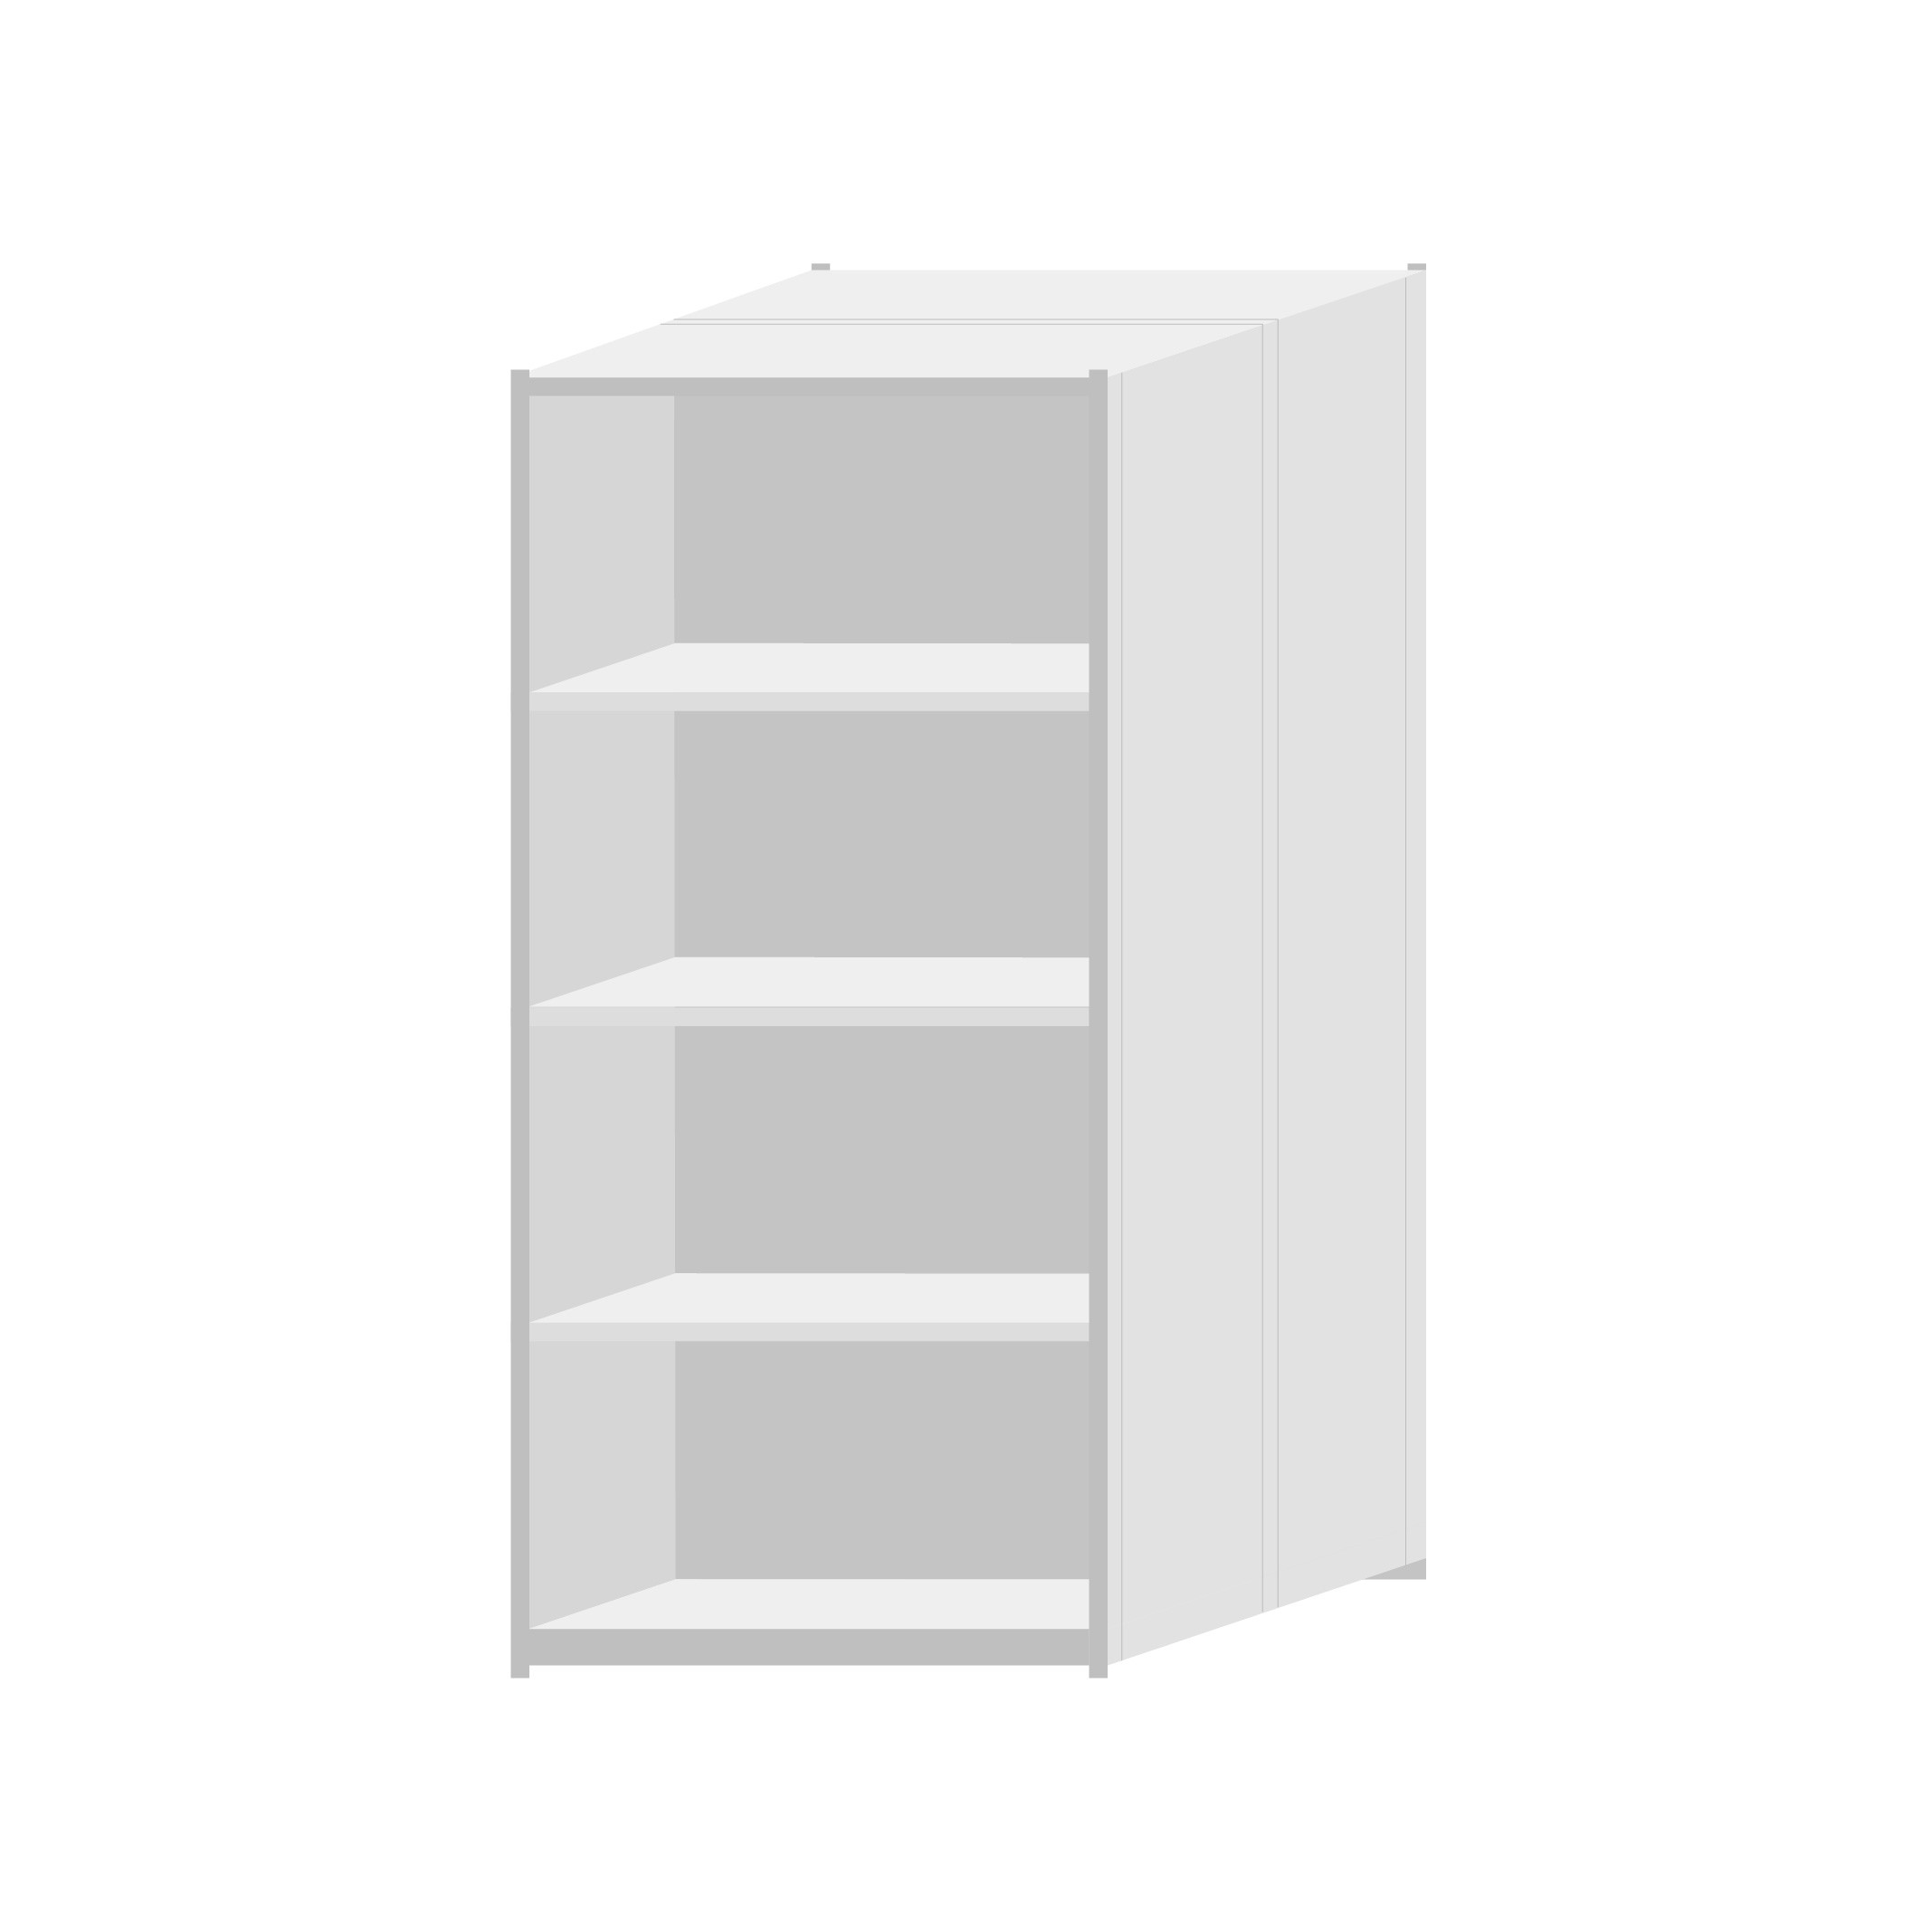 RUT Shelving 900mm Wide - 5 Levels (Double Sided)